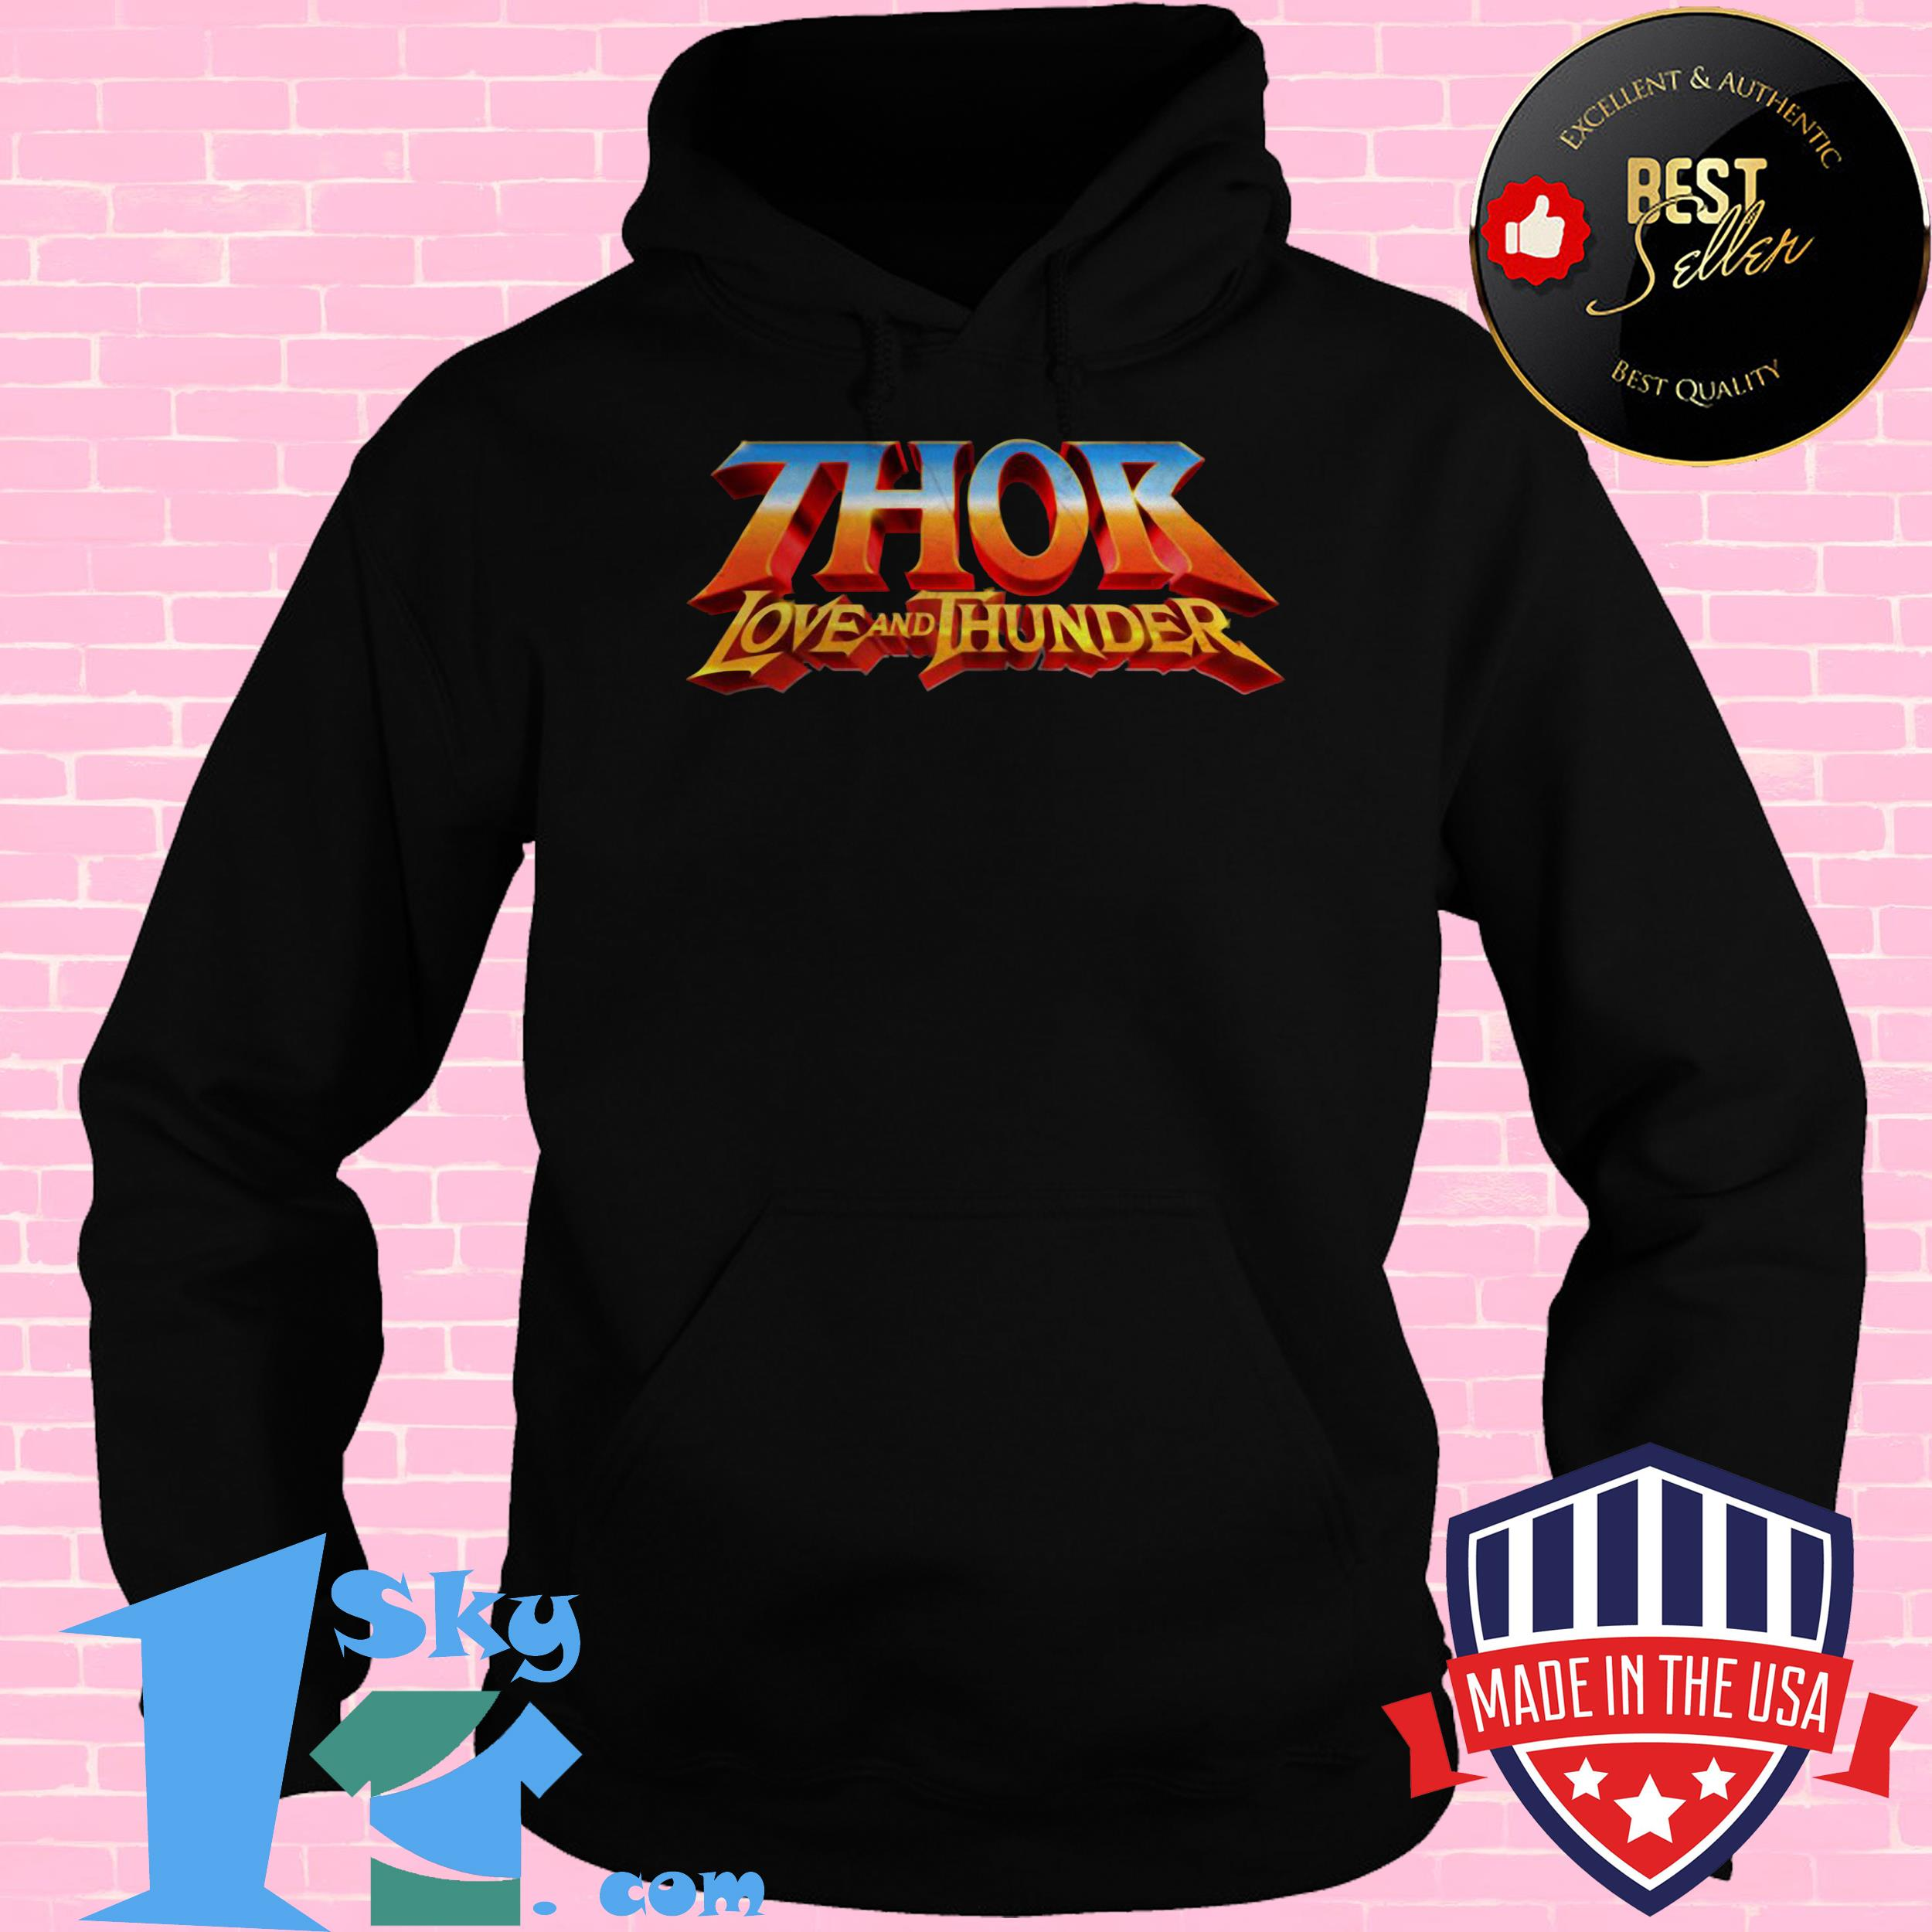 official thor love and thunder hoodie - Official Thor Love and Thunder shirt